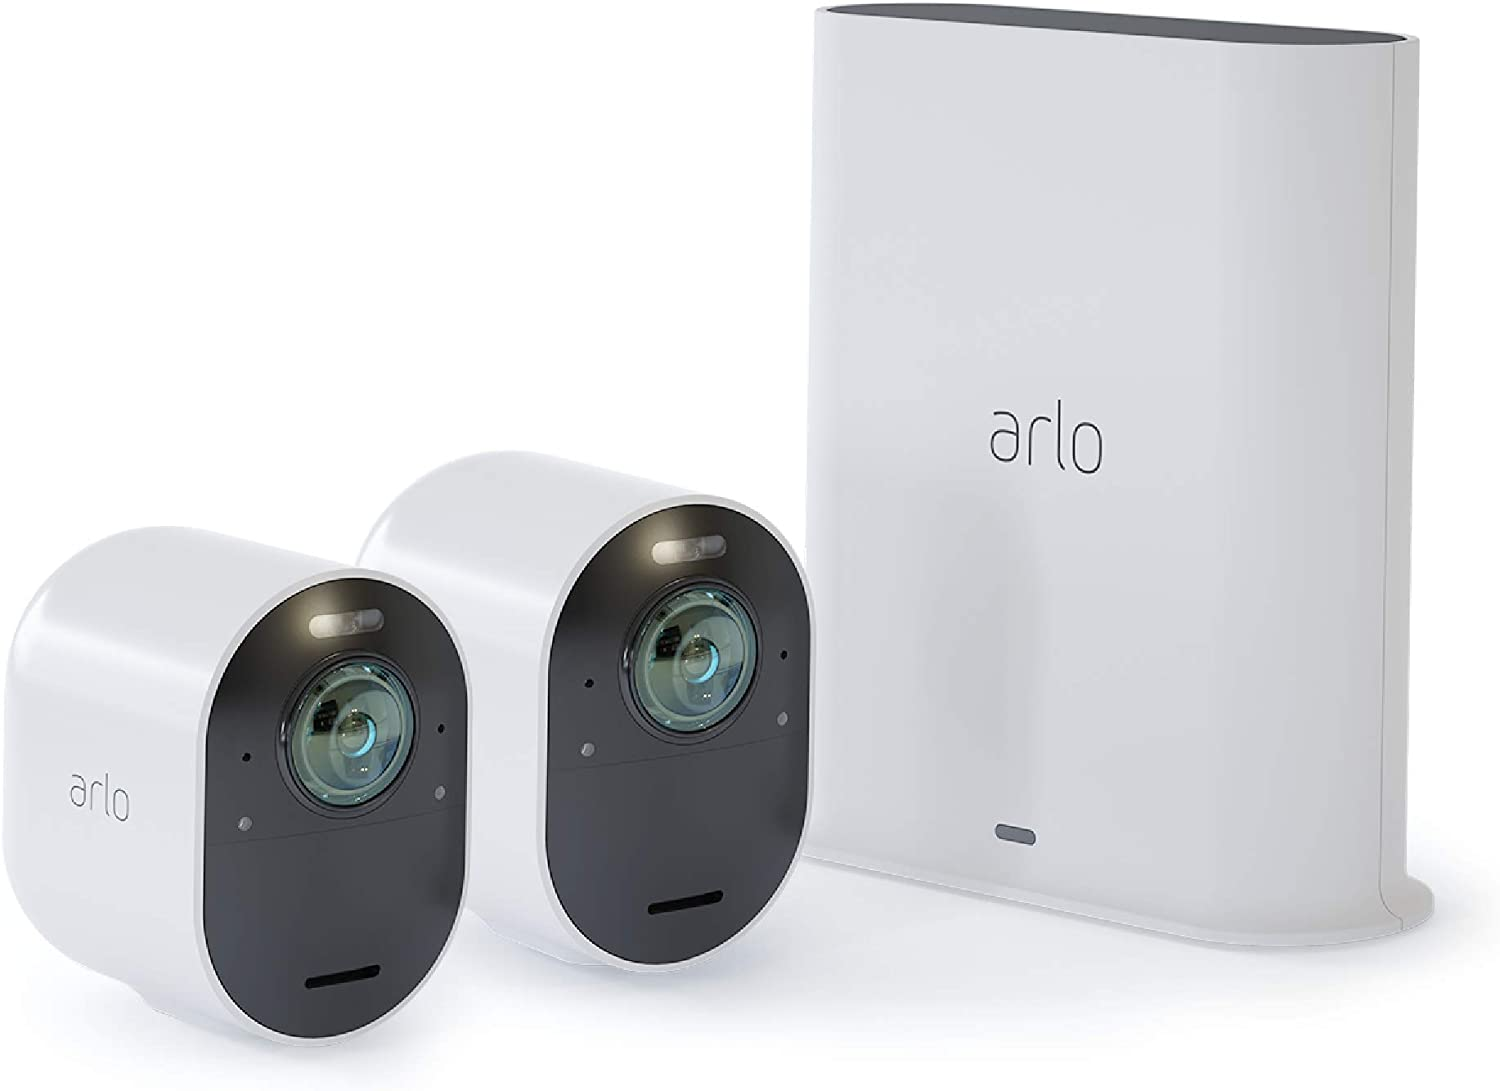 Arlo Ultra - 4K UHD Wire-Free Security 2 Camera System | Indoor/Outdoor with Color Night Vision, 180° View, 2-Way Audio, Spotlight, Siren | Works with Alexa and HomeKit | (VMS5240) (Renewed)